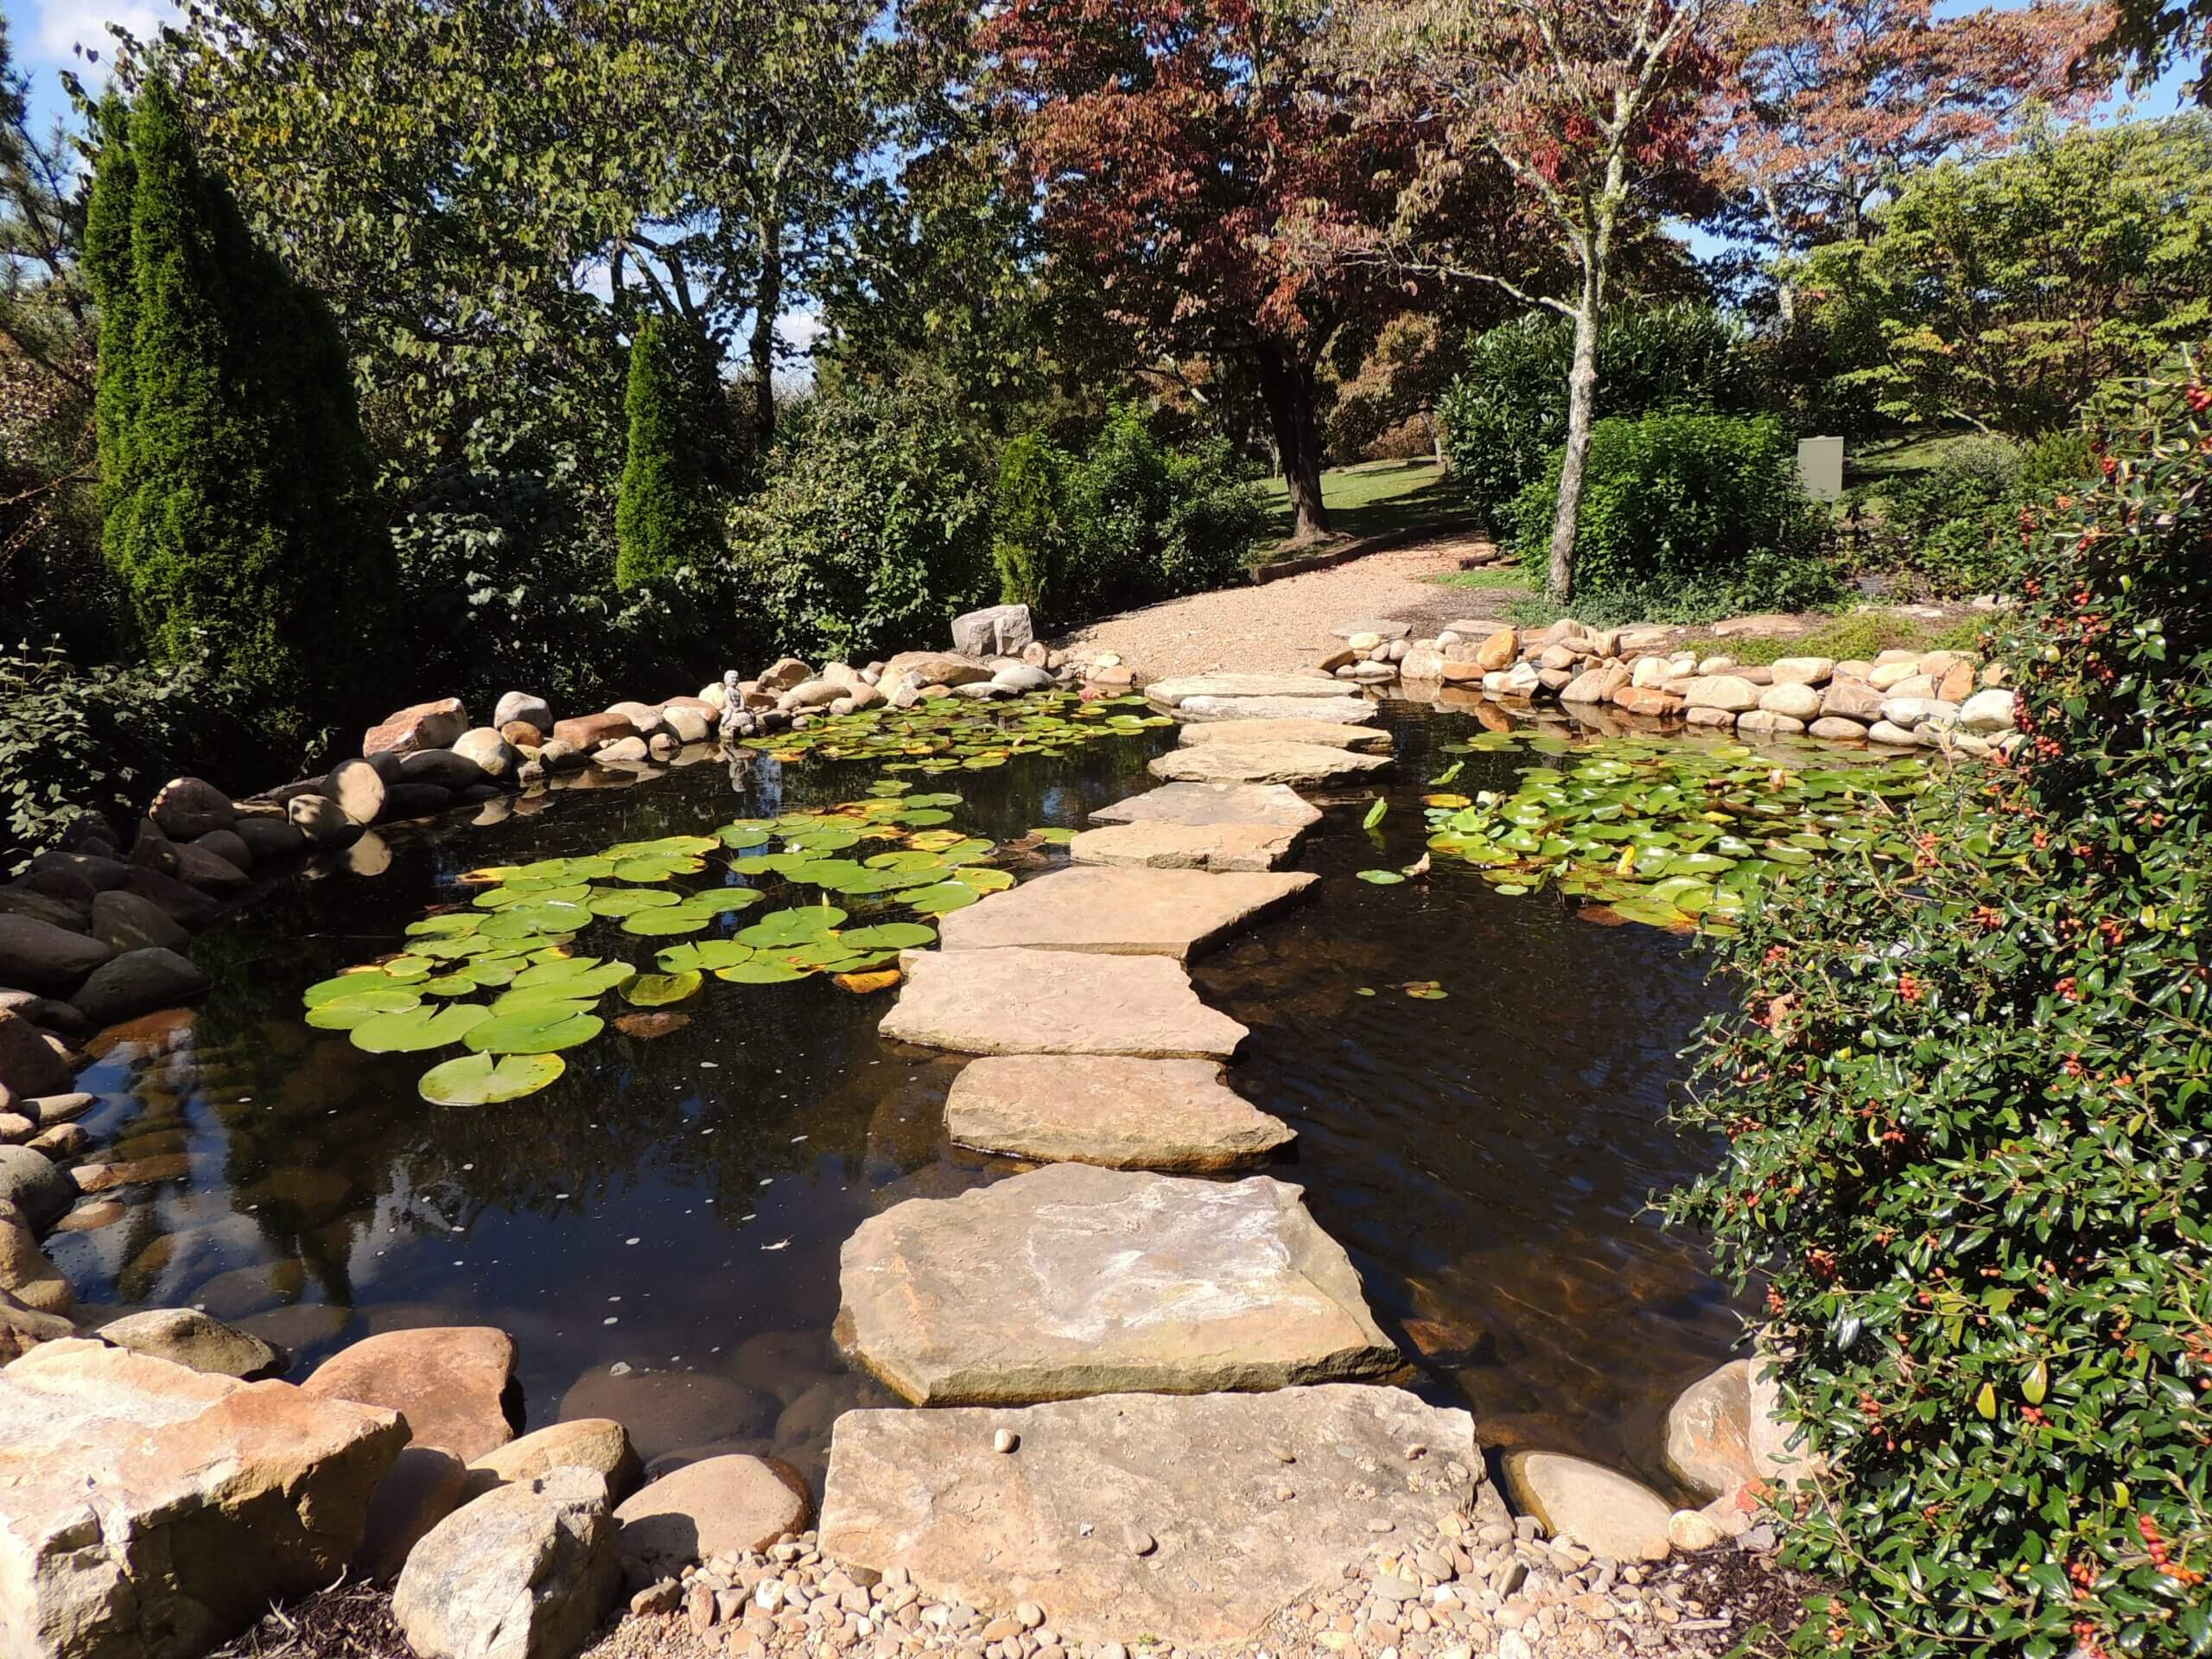 RS Earthen Bridge with Stepping Stones in Fountain City area of Knoxville